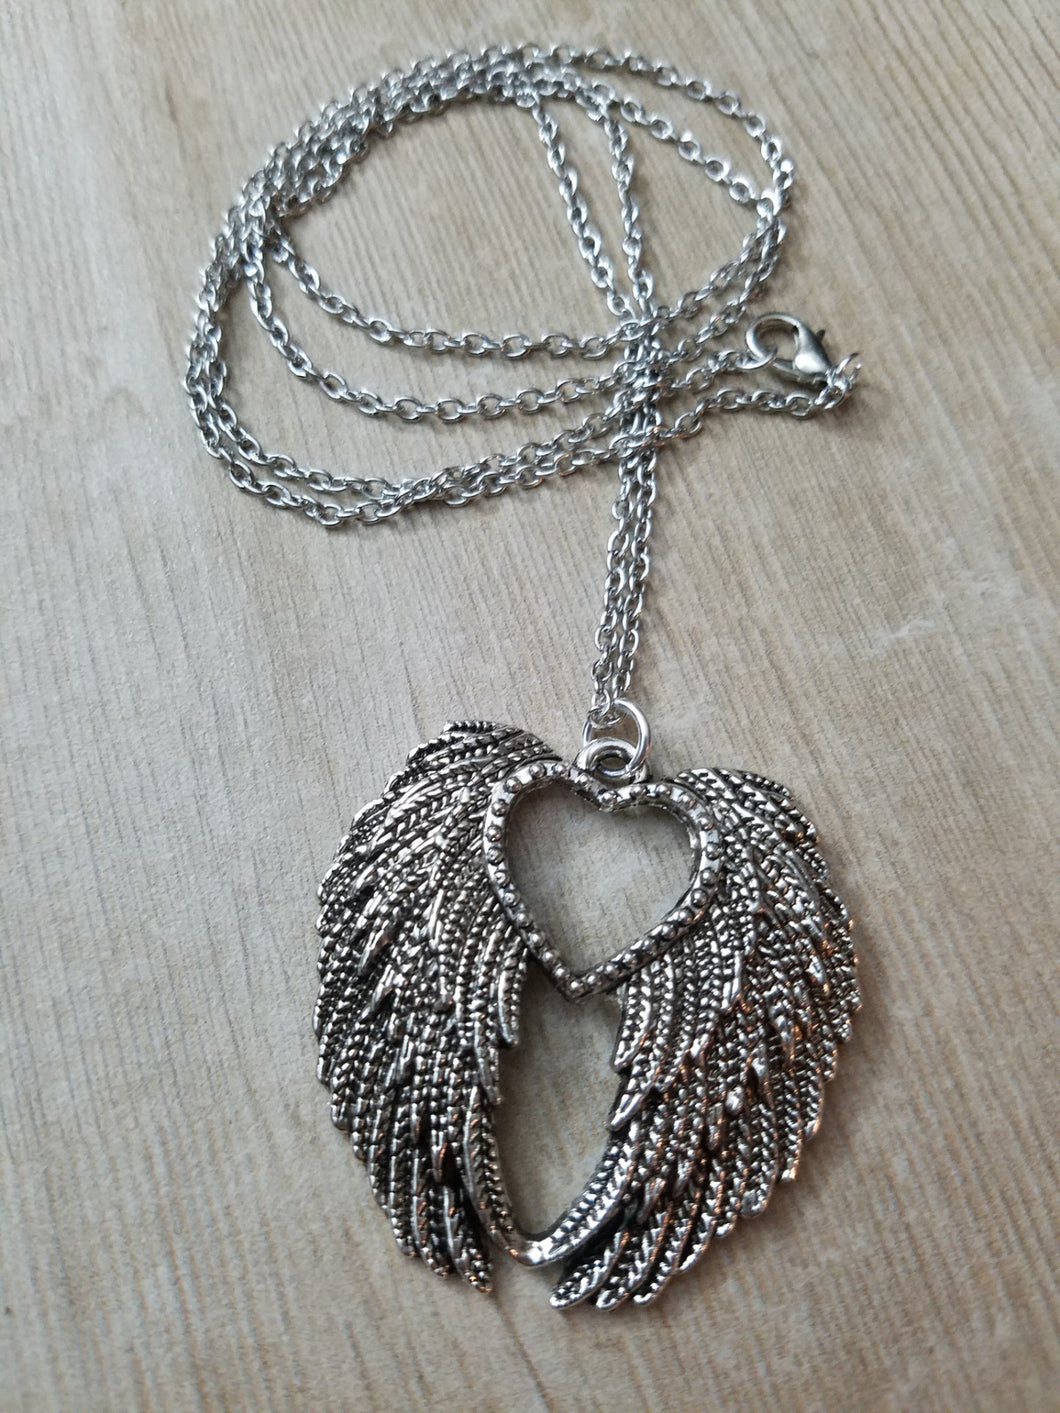 Angel heart necklace my anchored grace angel heart necklace mozeypictures Choice Image